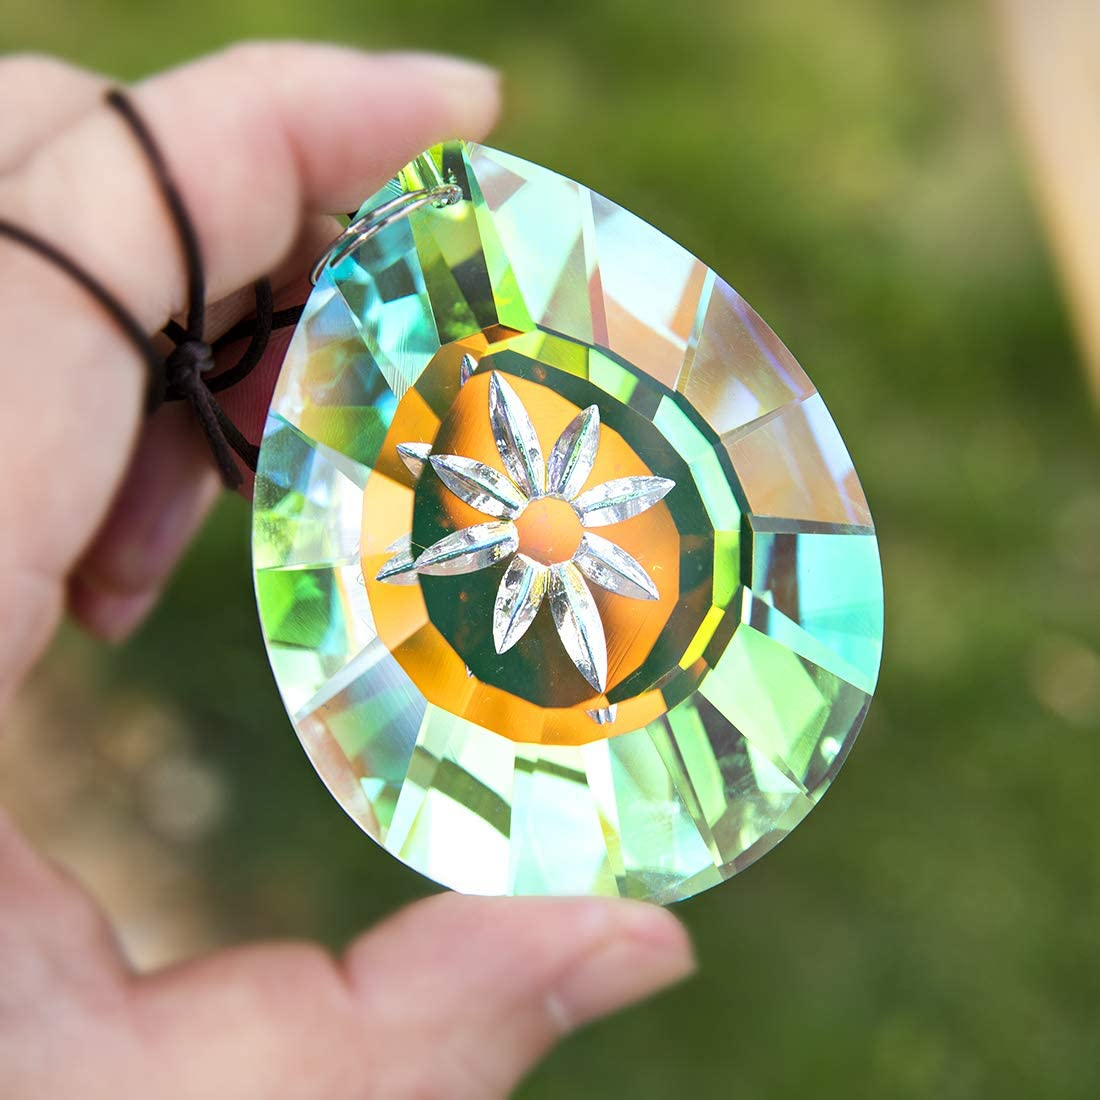 H&D Hanging Crystals Prism Suncatcher【ALL 6 STYLES - ONLY $4.9 EACH】